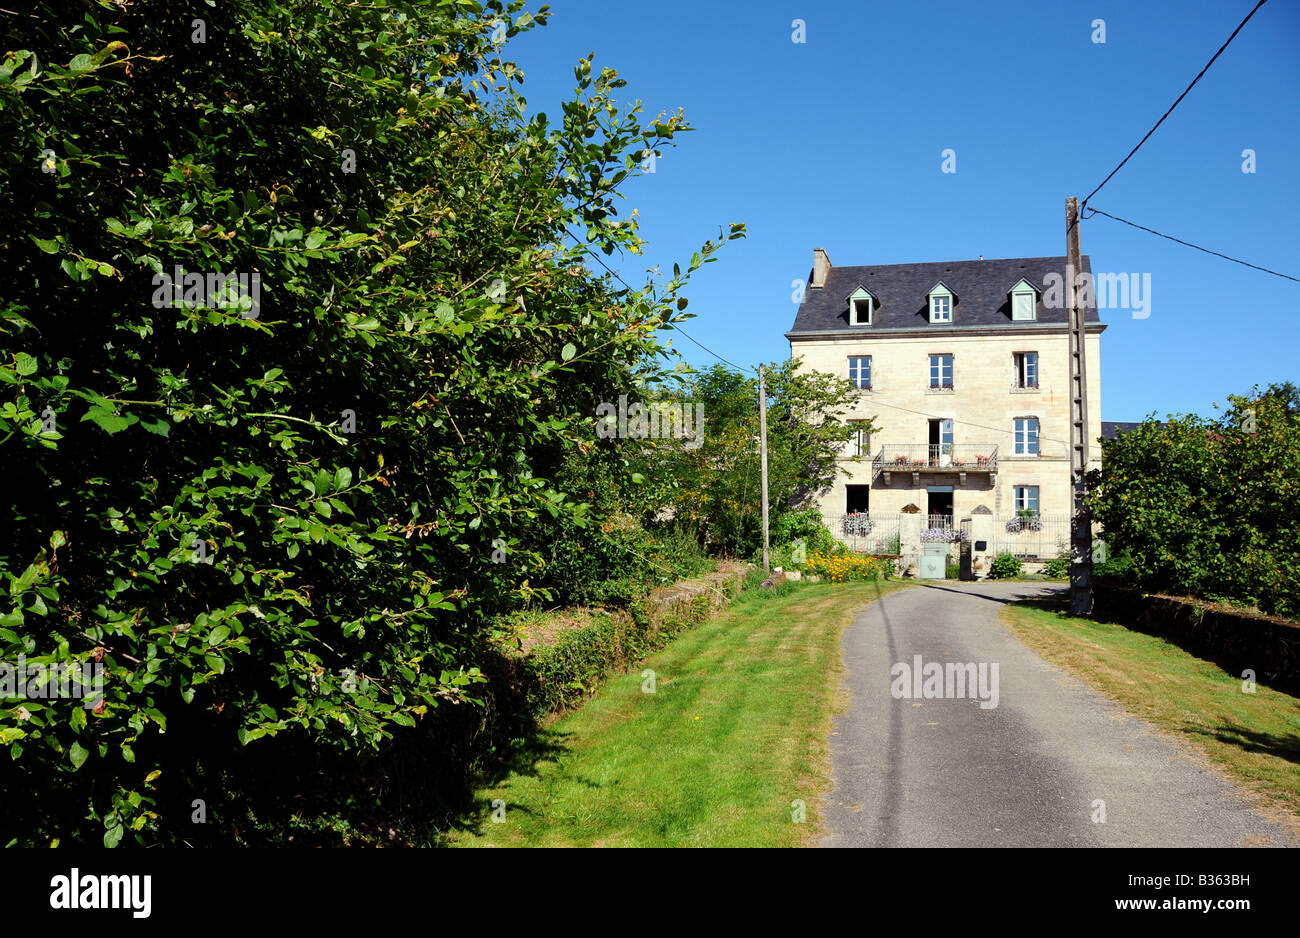 A house featured on the Channel 4 programme 'Grand Designs' - Chez Jallot - Limousin region, France - Stock Image